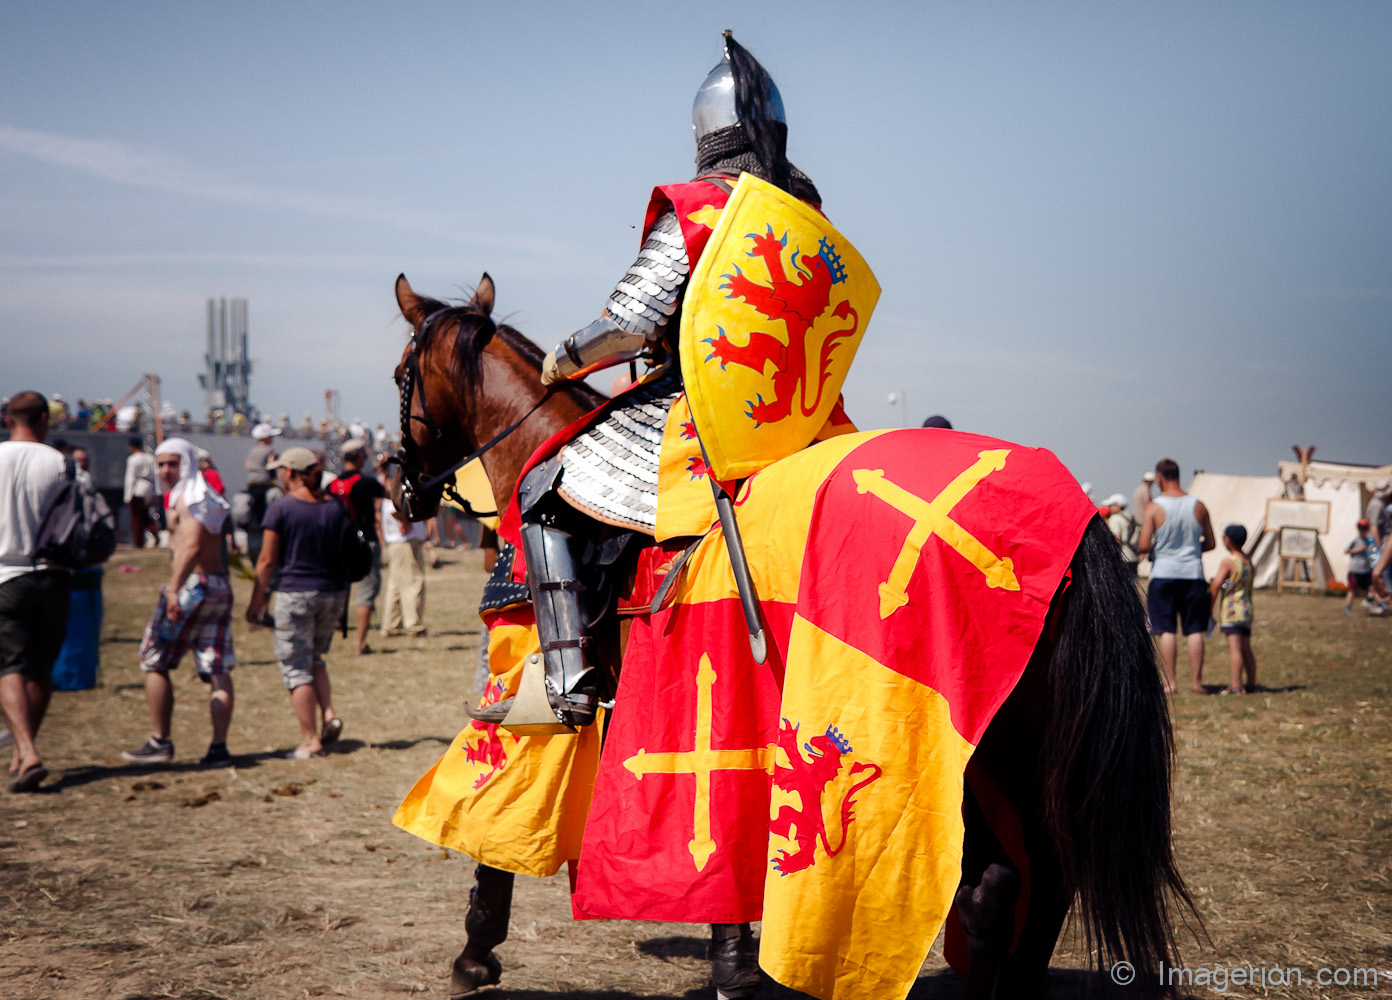 A knight on horseback, yellow and read coat of arms